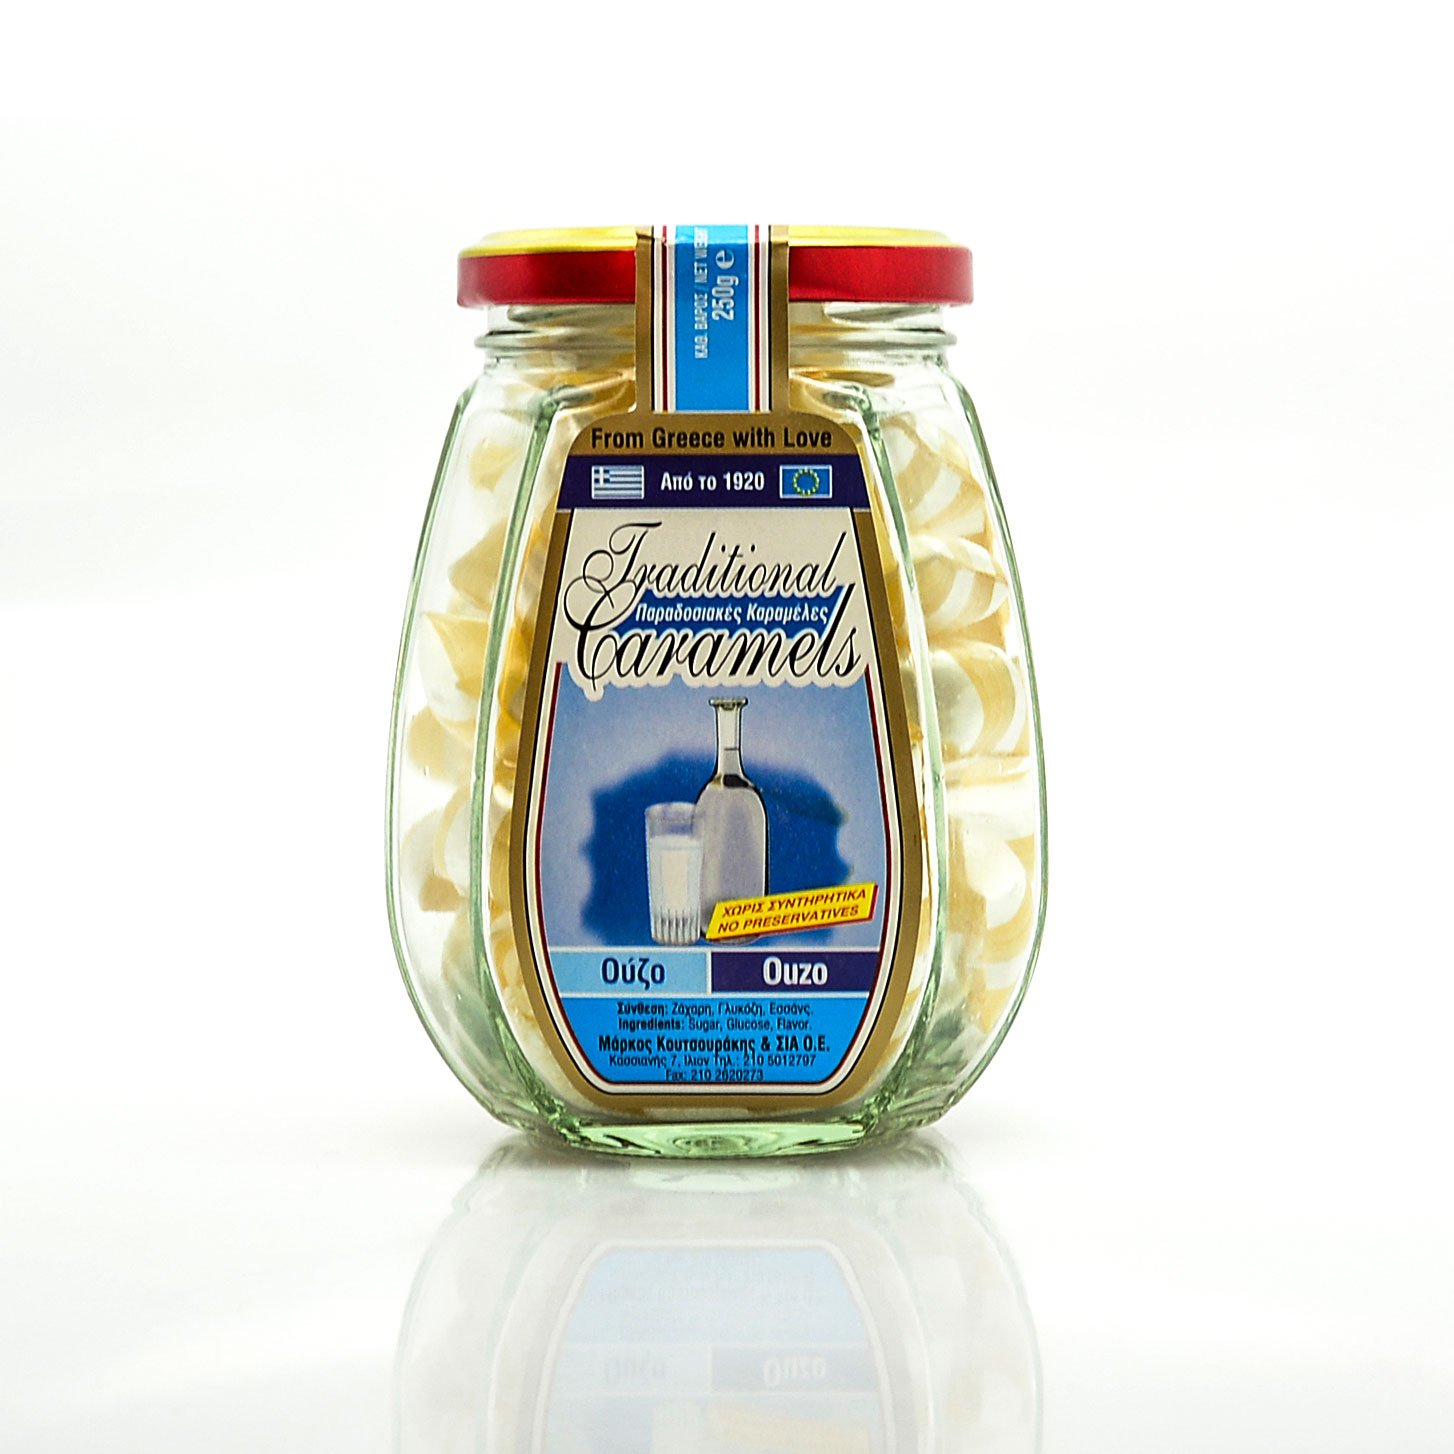 Amazon.com : Greek Traditional Caramels, Lemon Flavored Hard Candy, 250g : Grocery & Gourmet Food